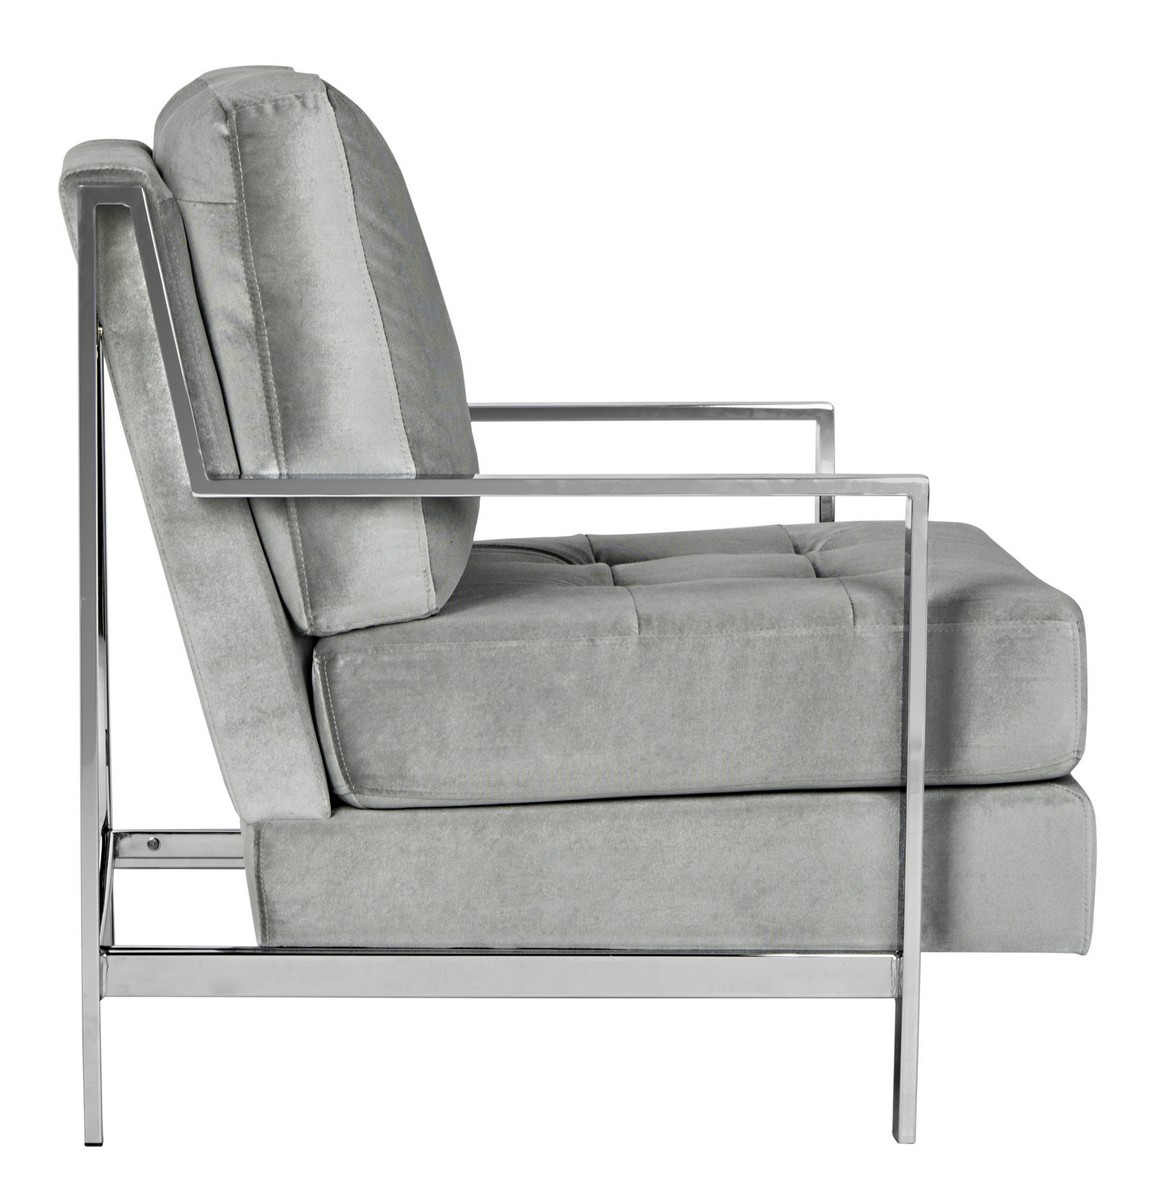 Surprising Fox6279C Accent Chairs Furniture By Safavieh Cjindustries Chair Design For Home Cjindustriesco